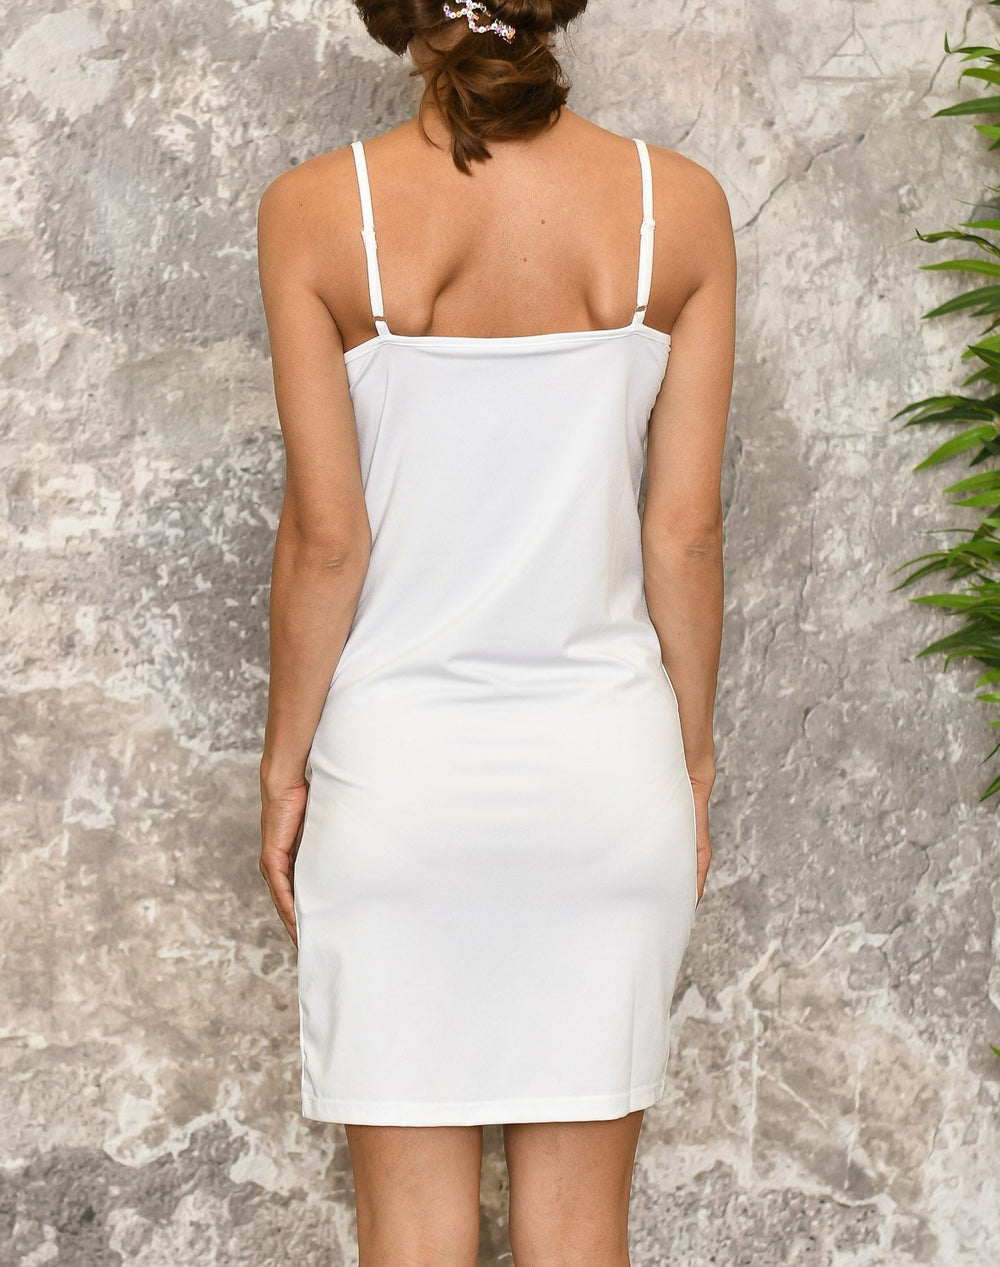 B.young BYiane underdress optical white - Online-Mode